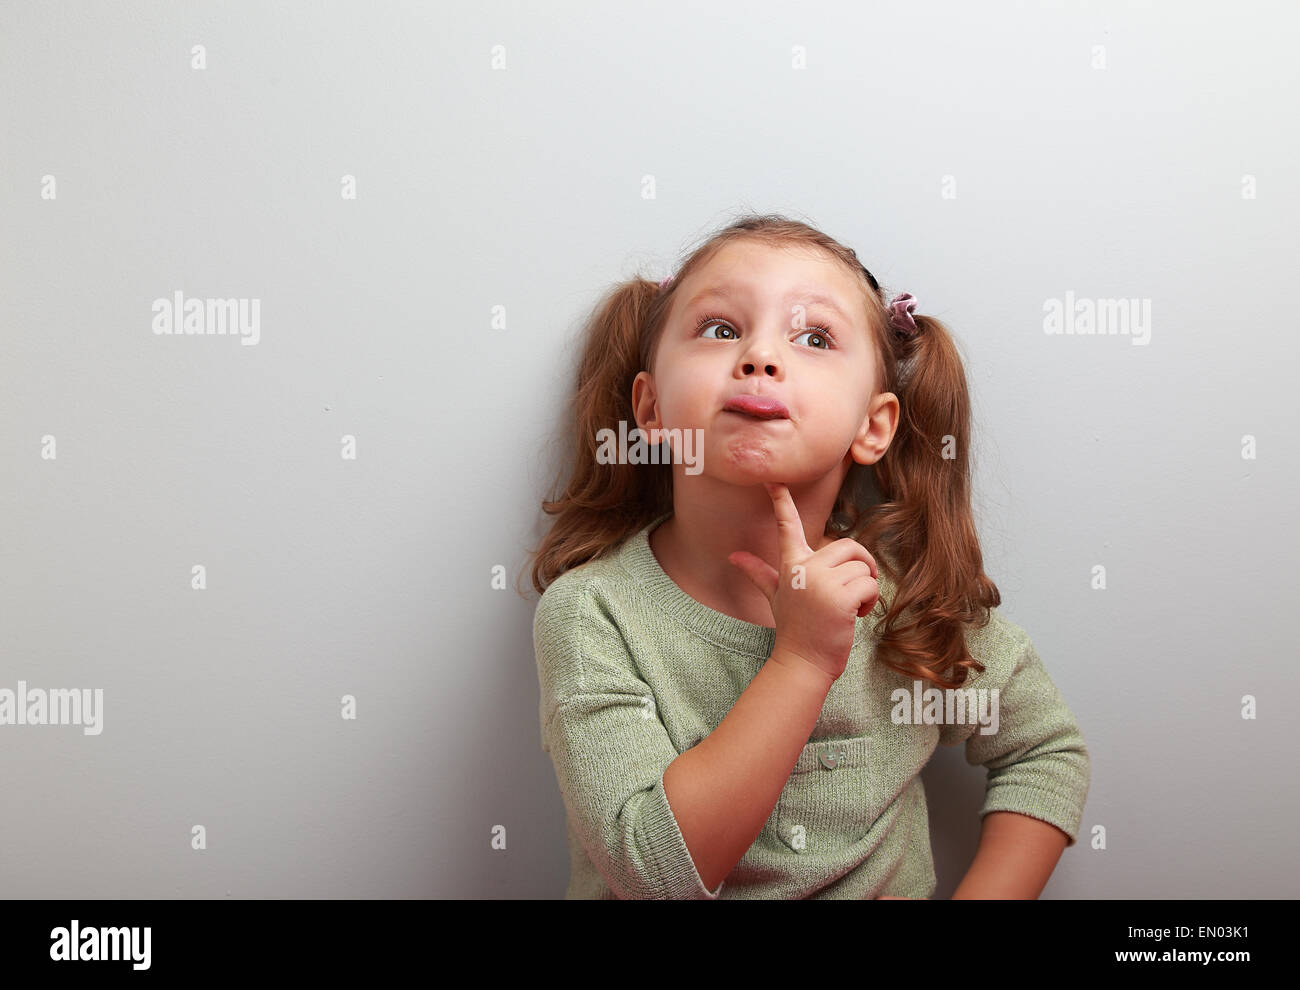 Fun grimacing girl thinking and looking up on blue background with empty copy space - Stock Image